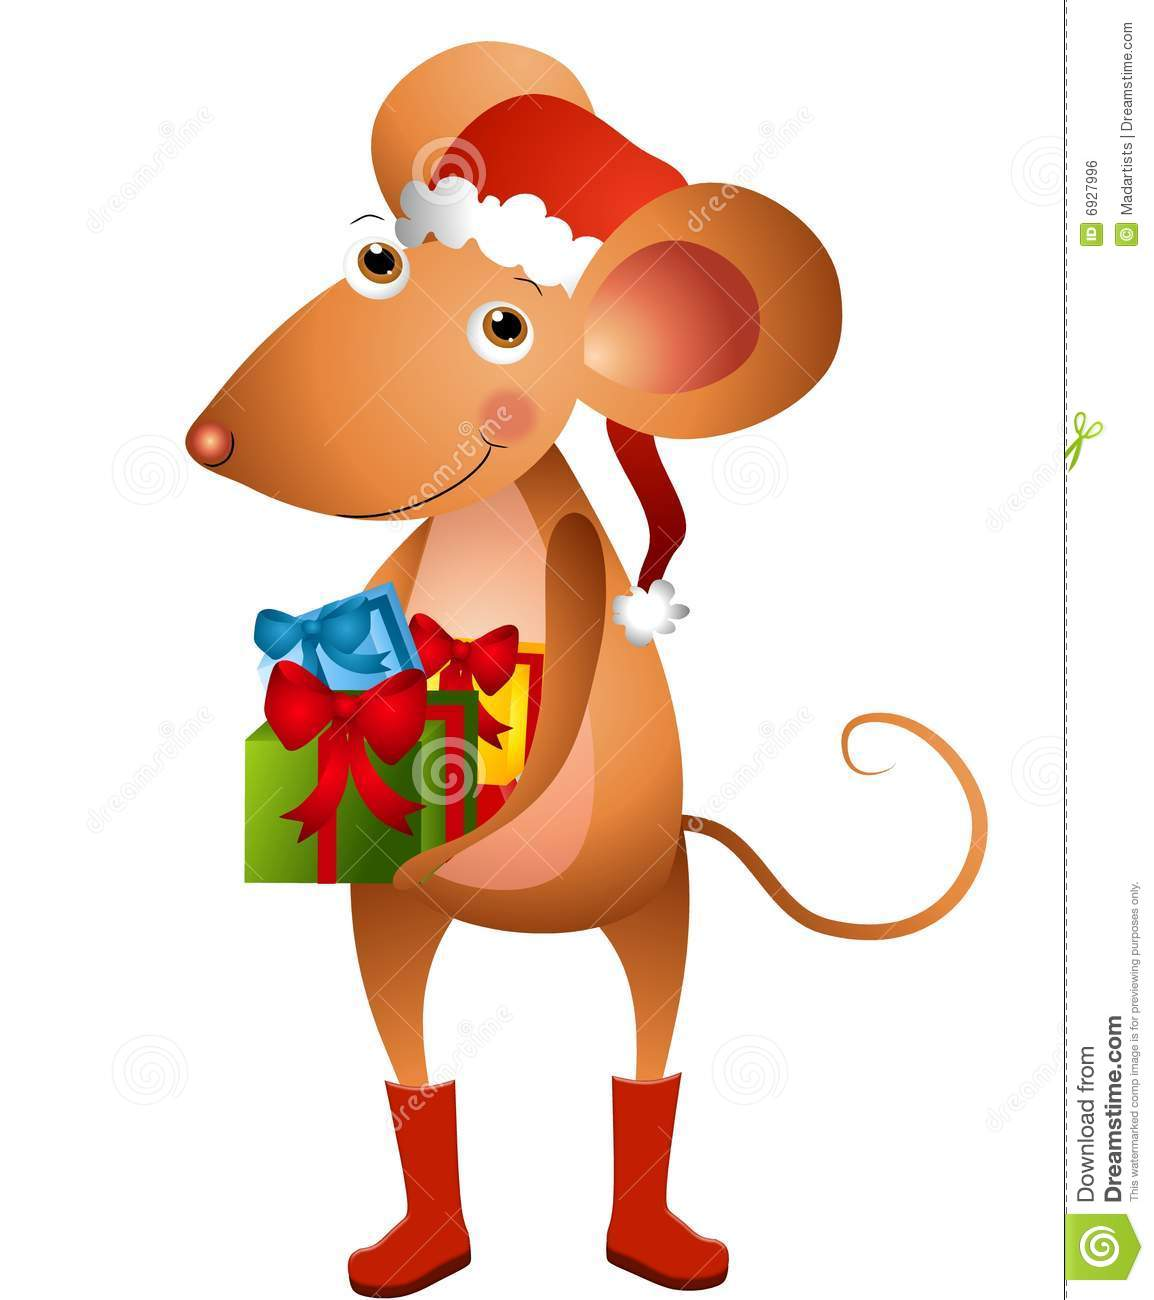 christmas mouse clipart - photo #16